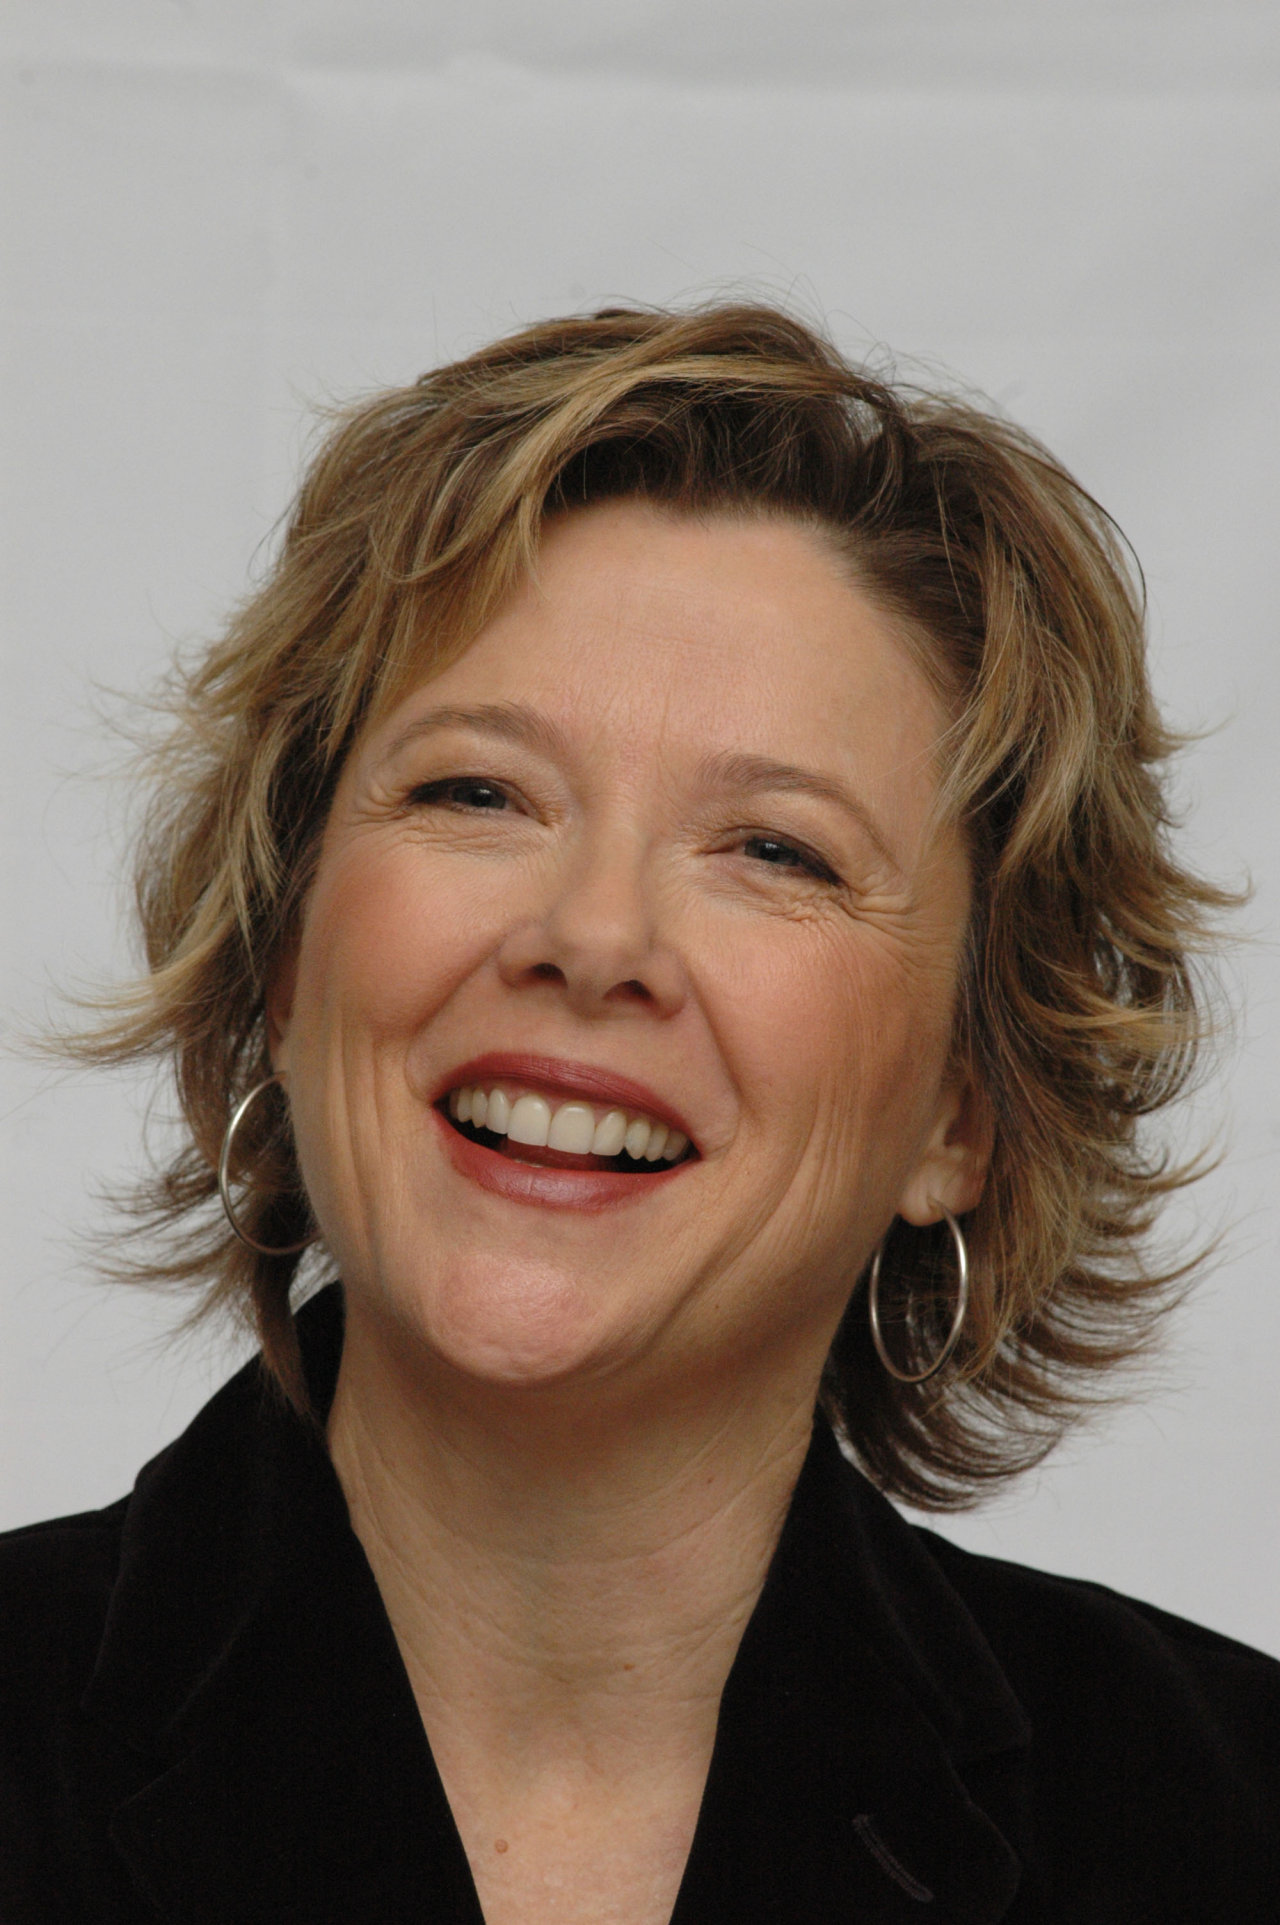 annette bening wallpaper - photo #4